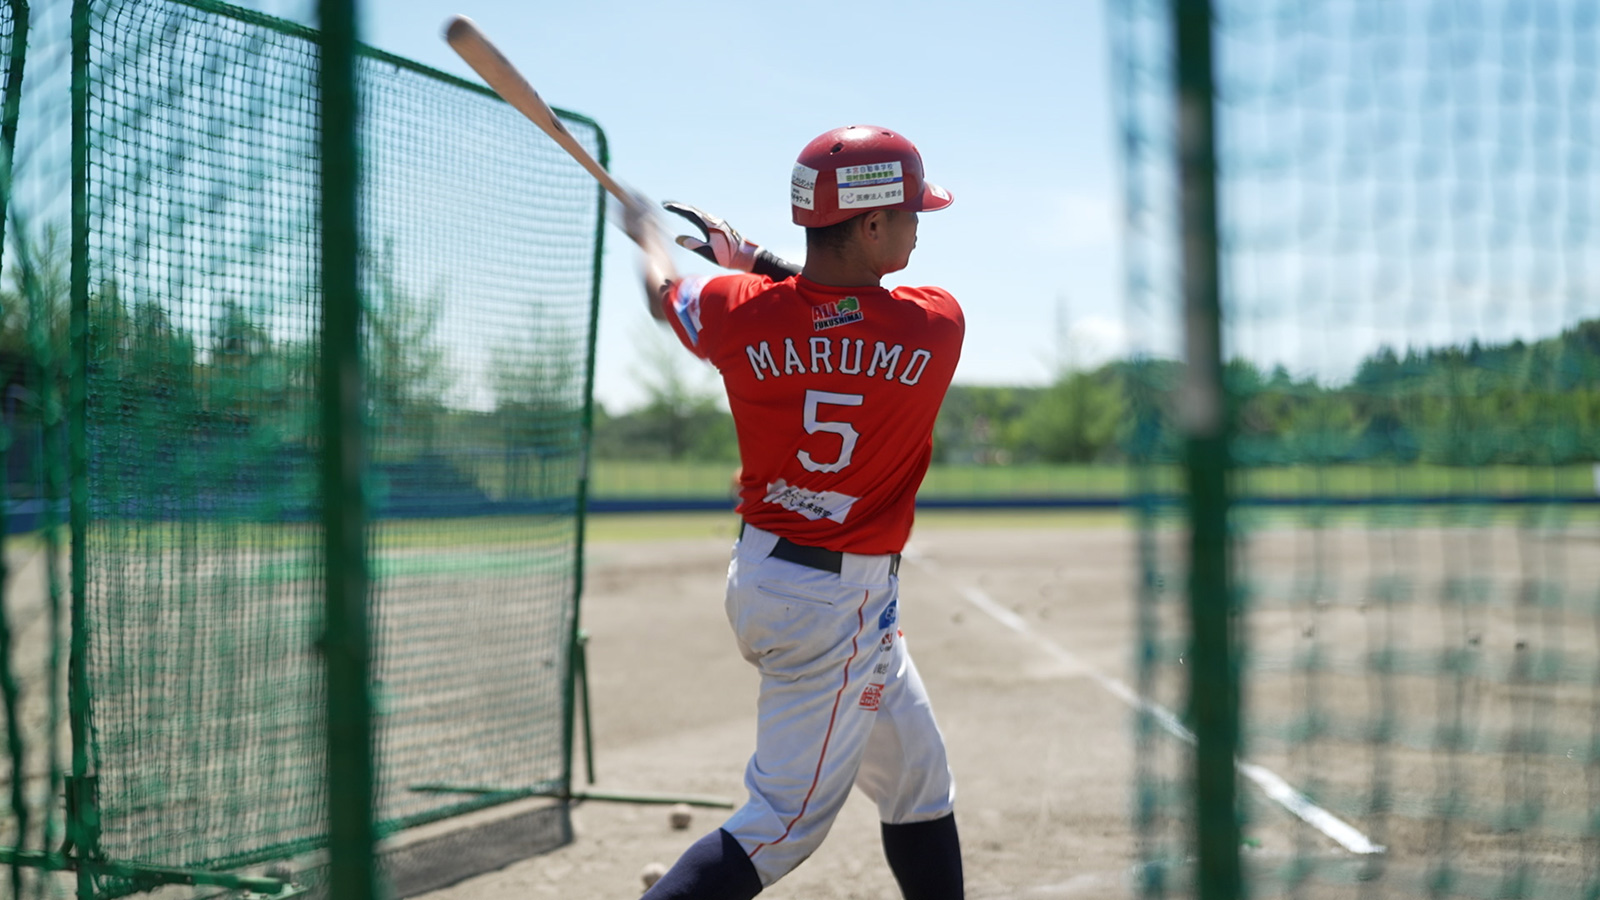 Baseball is part of Japan's culture, with fans tuning in every season to cheer on their favorite teams.